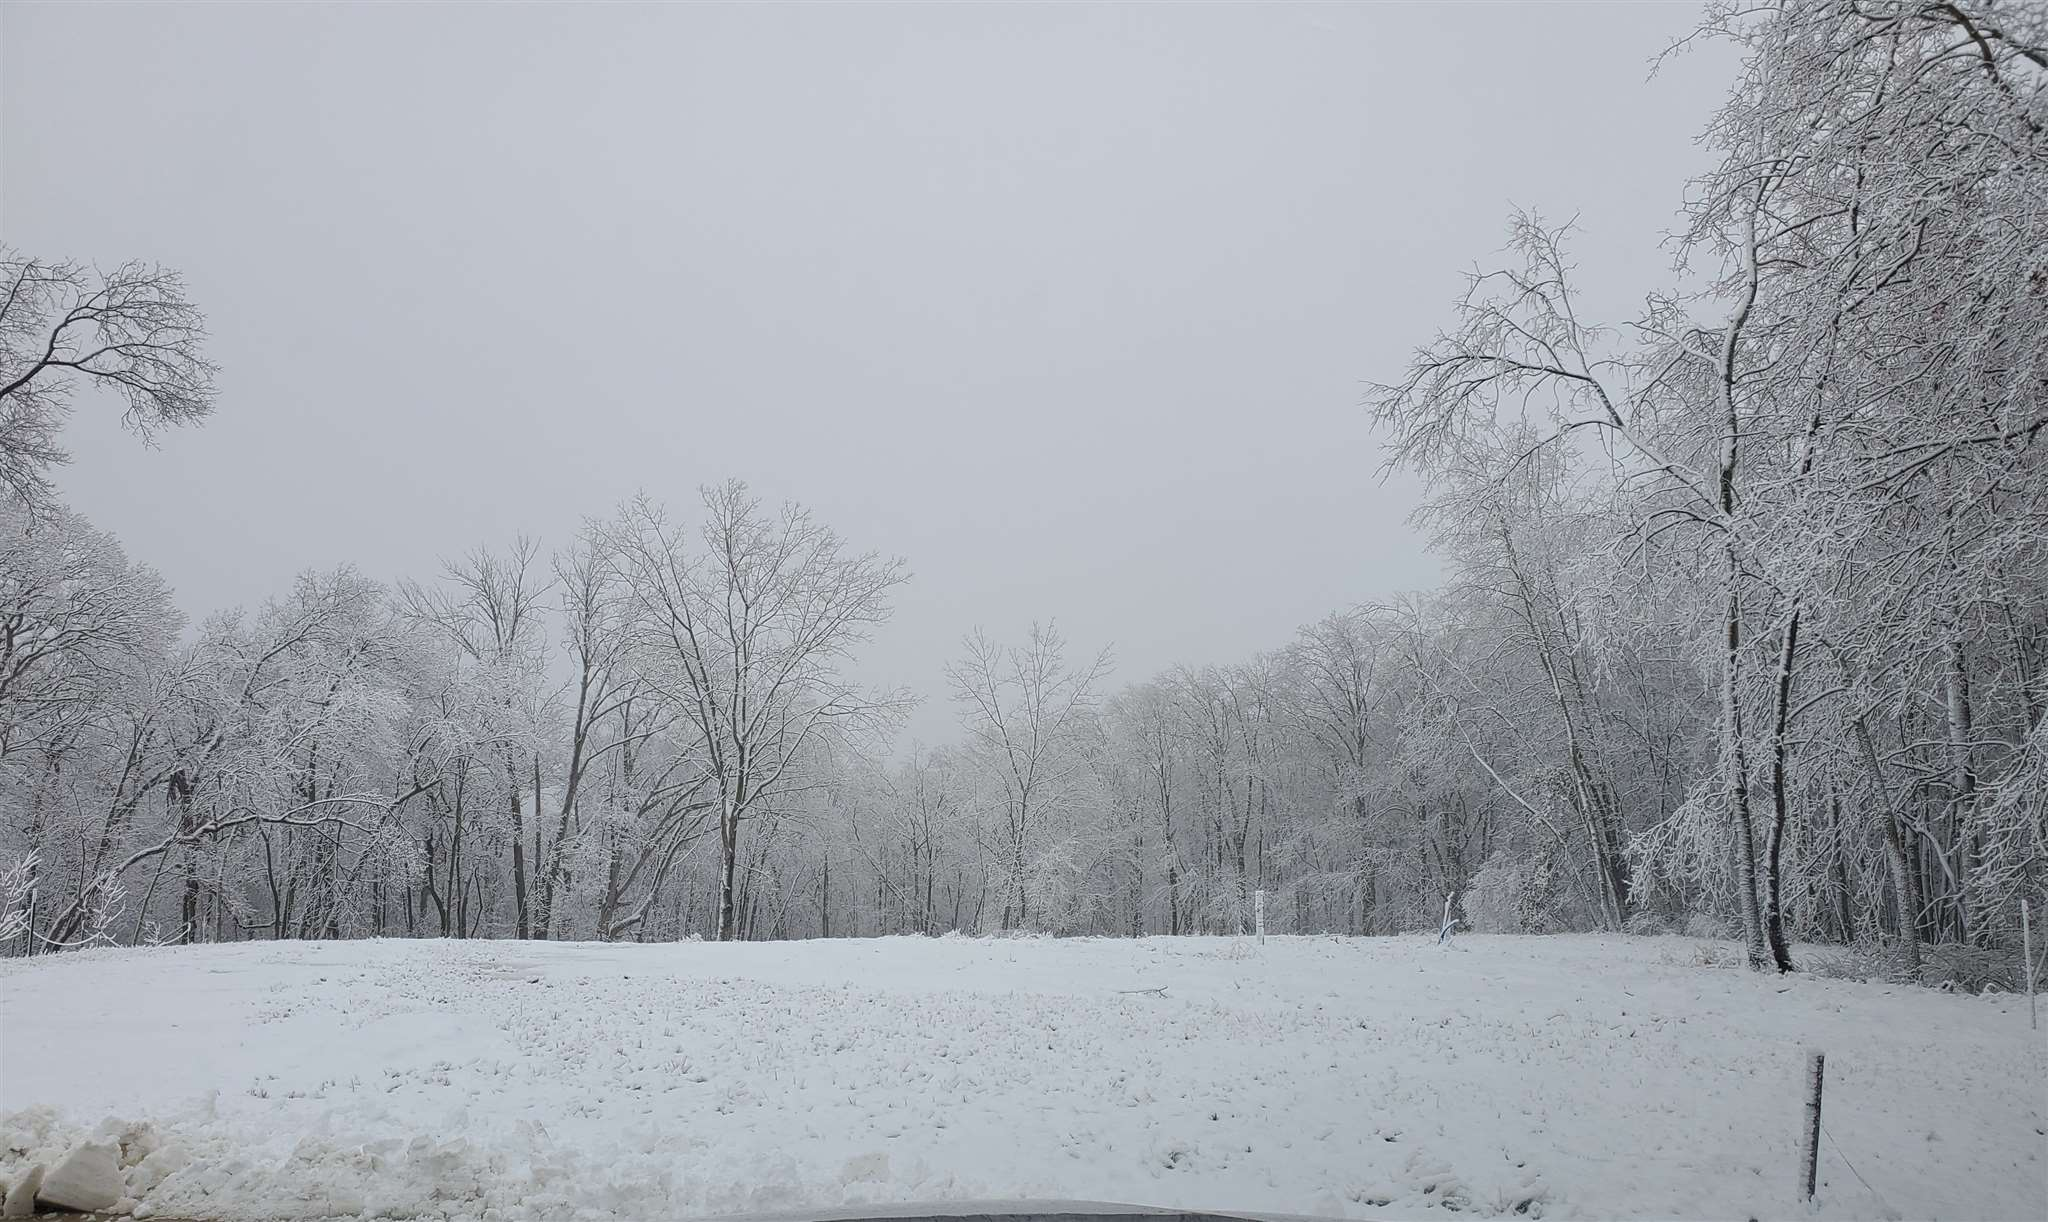 115 ROSEMARY Property Photo - Germantown Hills, IL real estate listing